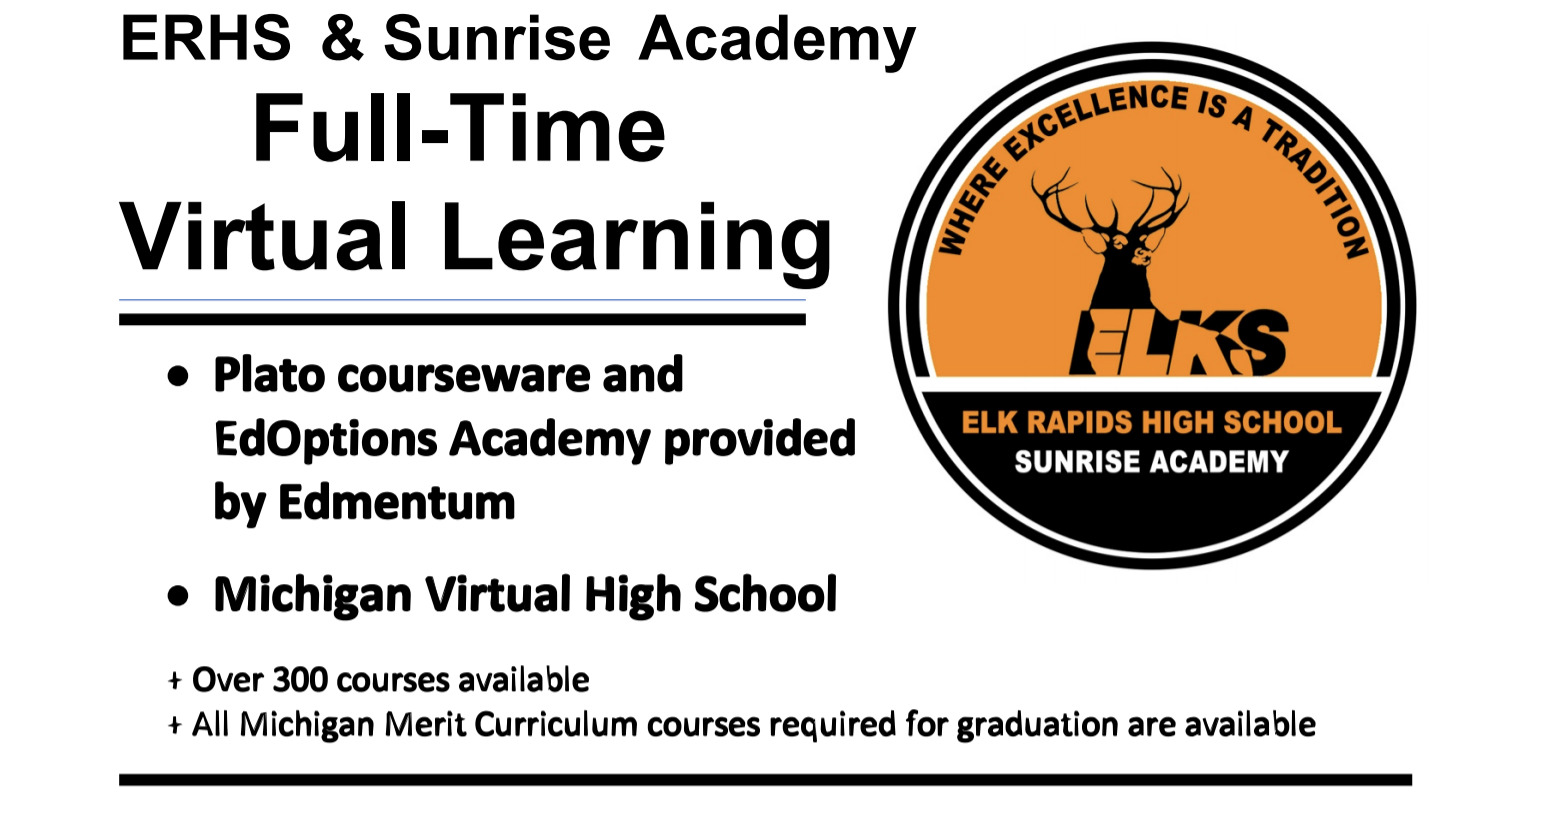 ERHS & Sunrise Academy Full-Time Virtual Learning with Plat courseware and EdOptions Academy provided by Edmentum, Michigan Virtual High School. 300 courses available. All Michigan Merit Curriculum courses are required for graduation are available.